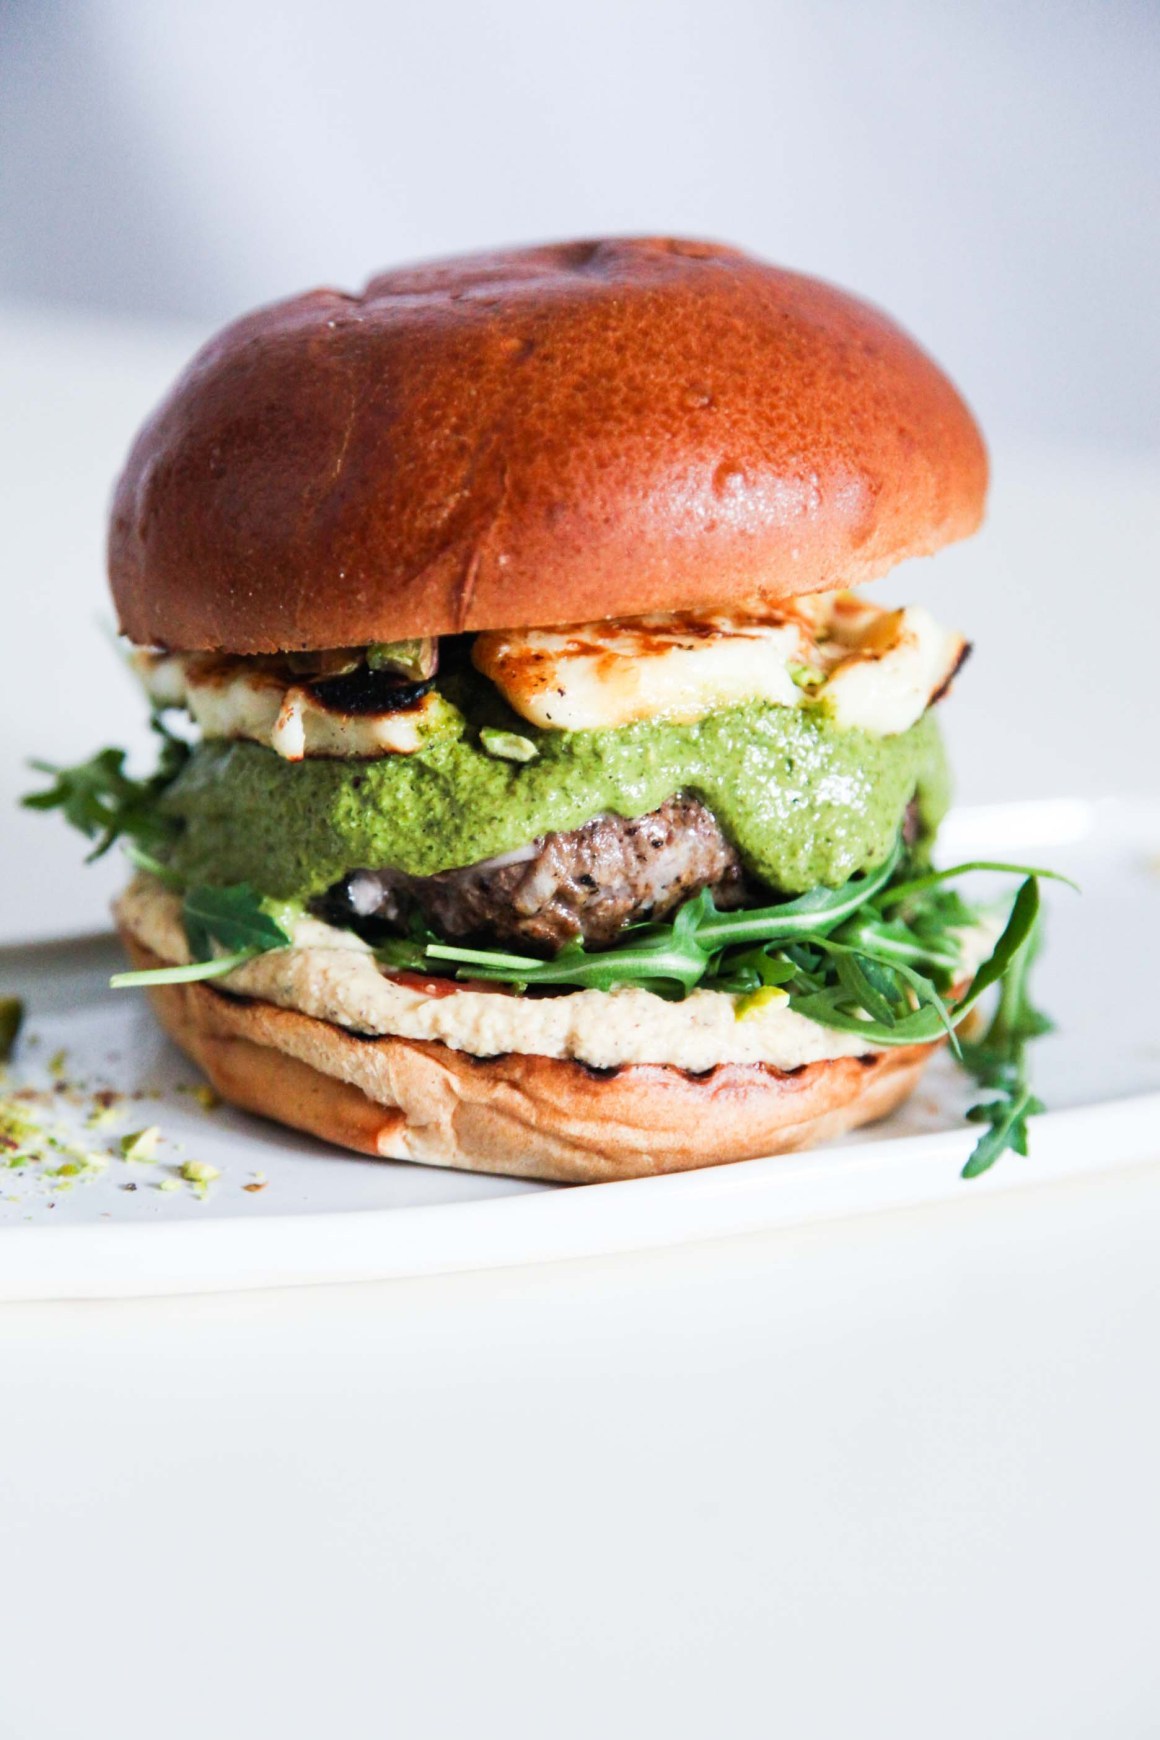 Super Tasty Lamb Burger with Halloumi and Green Herb Sauce